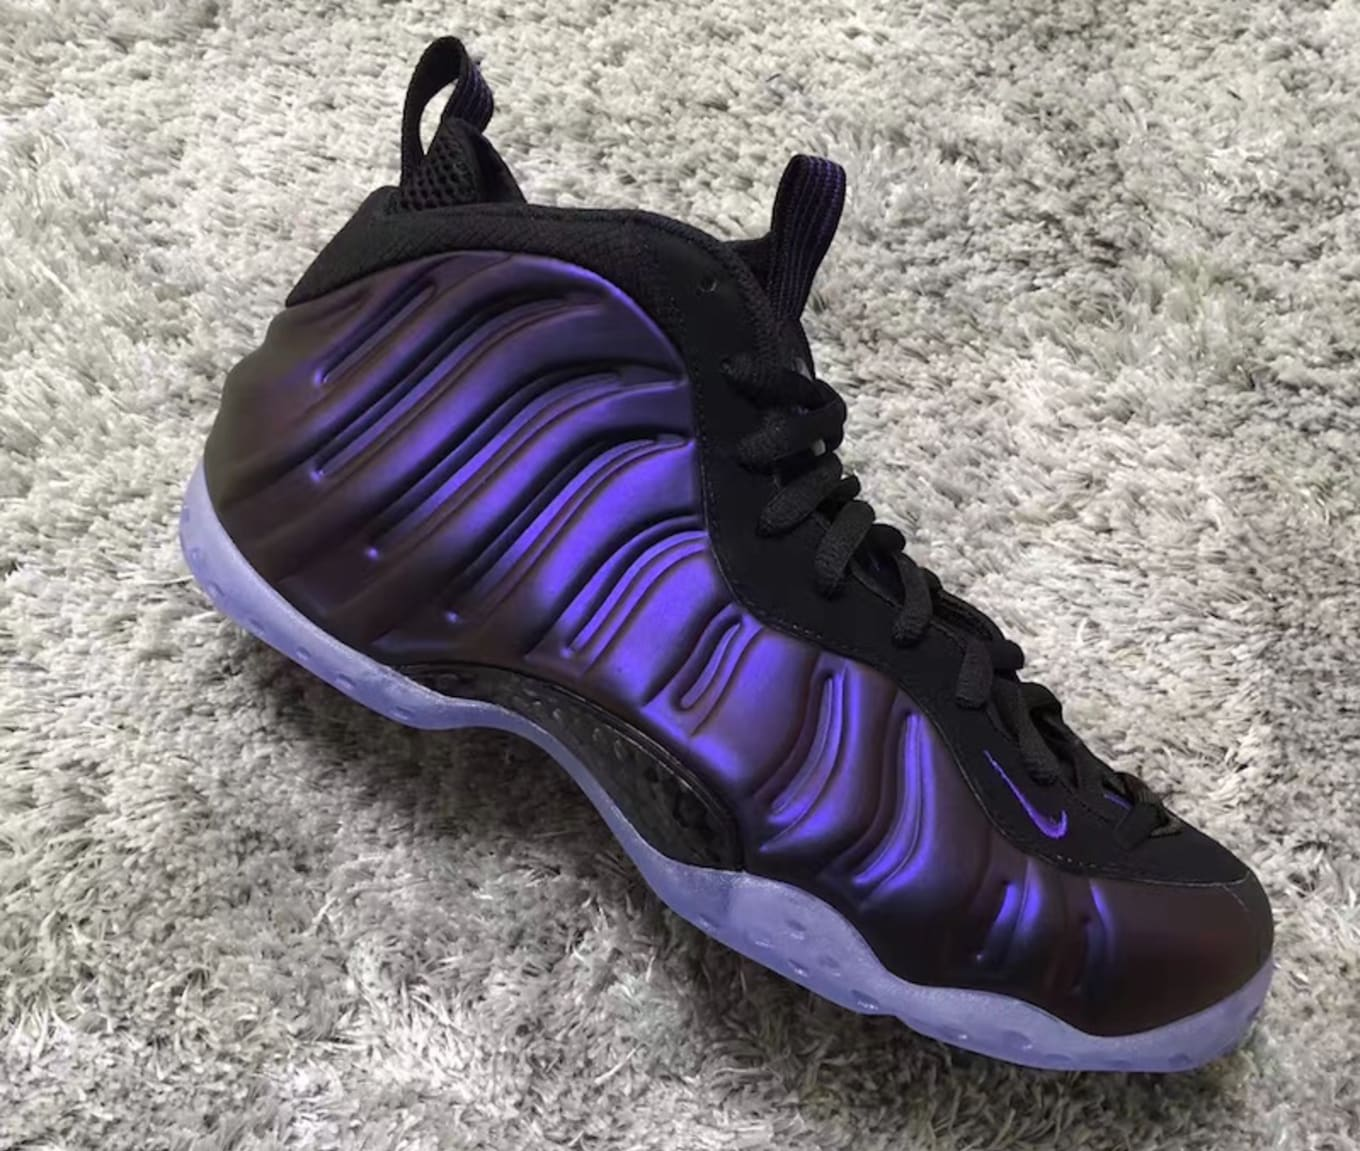 ab76bf75cee89  Eggplant  Nike Air Foamposites Are Releasing This Summer. Purple returns  to the  90s basketball icon.